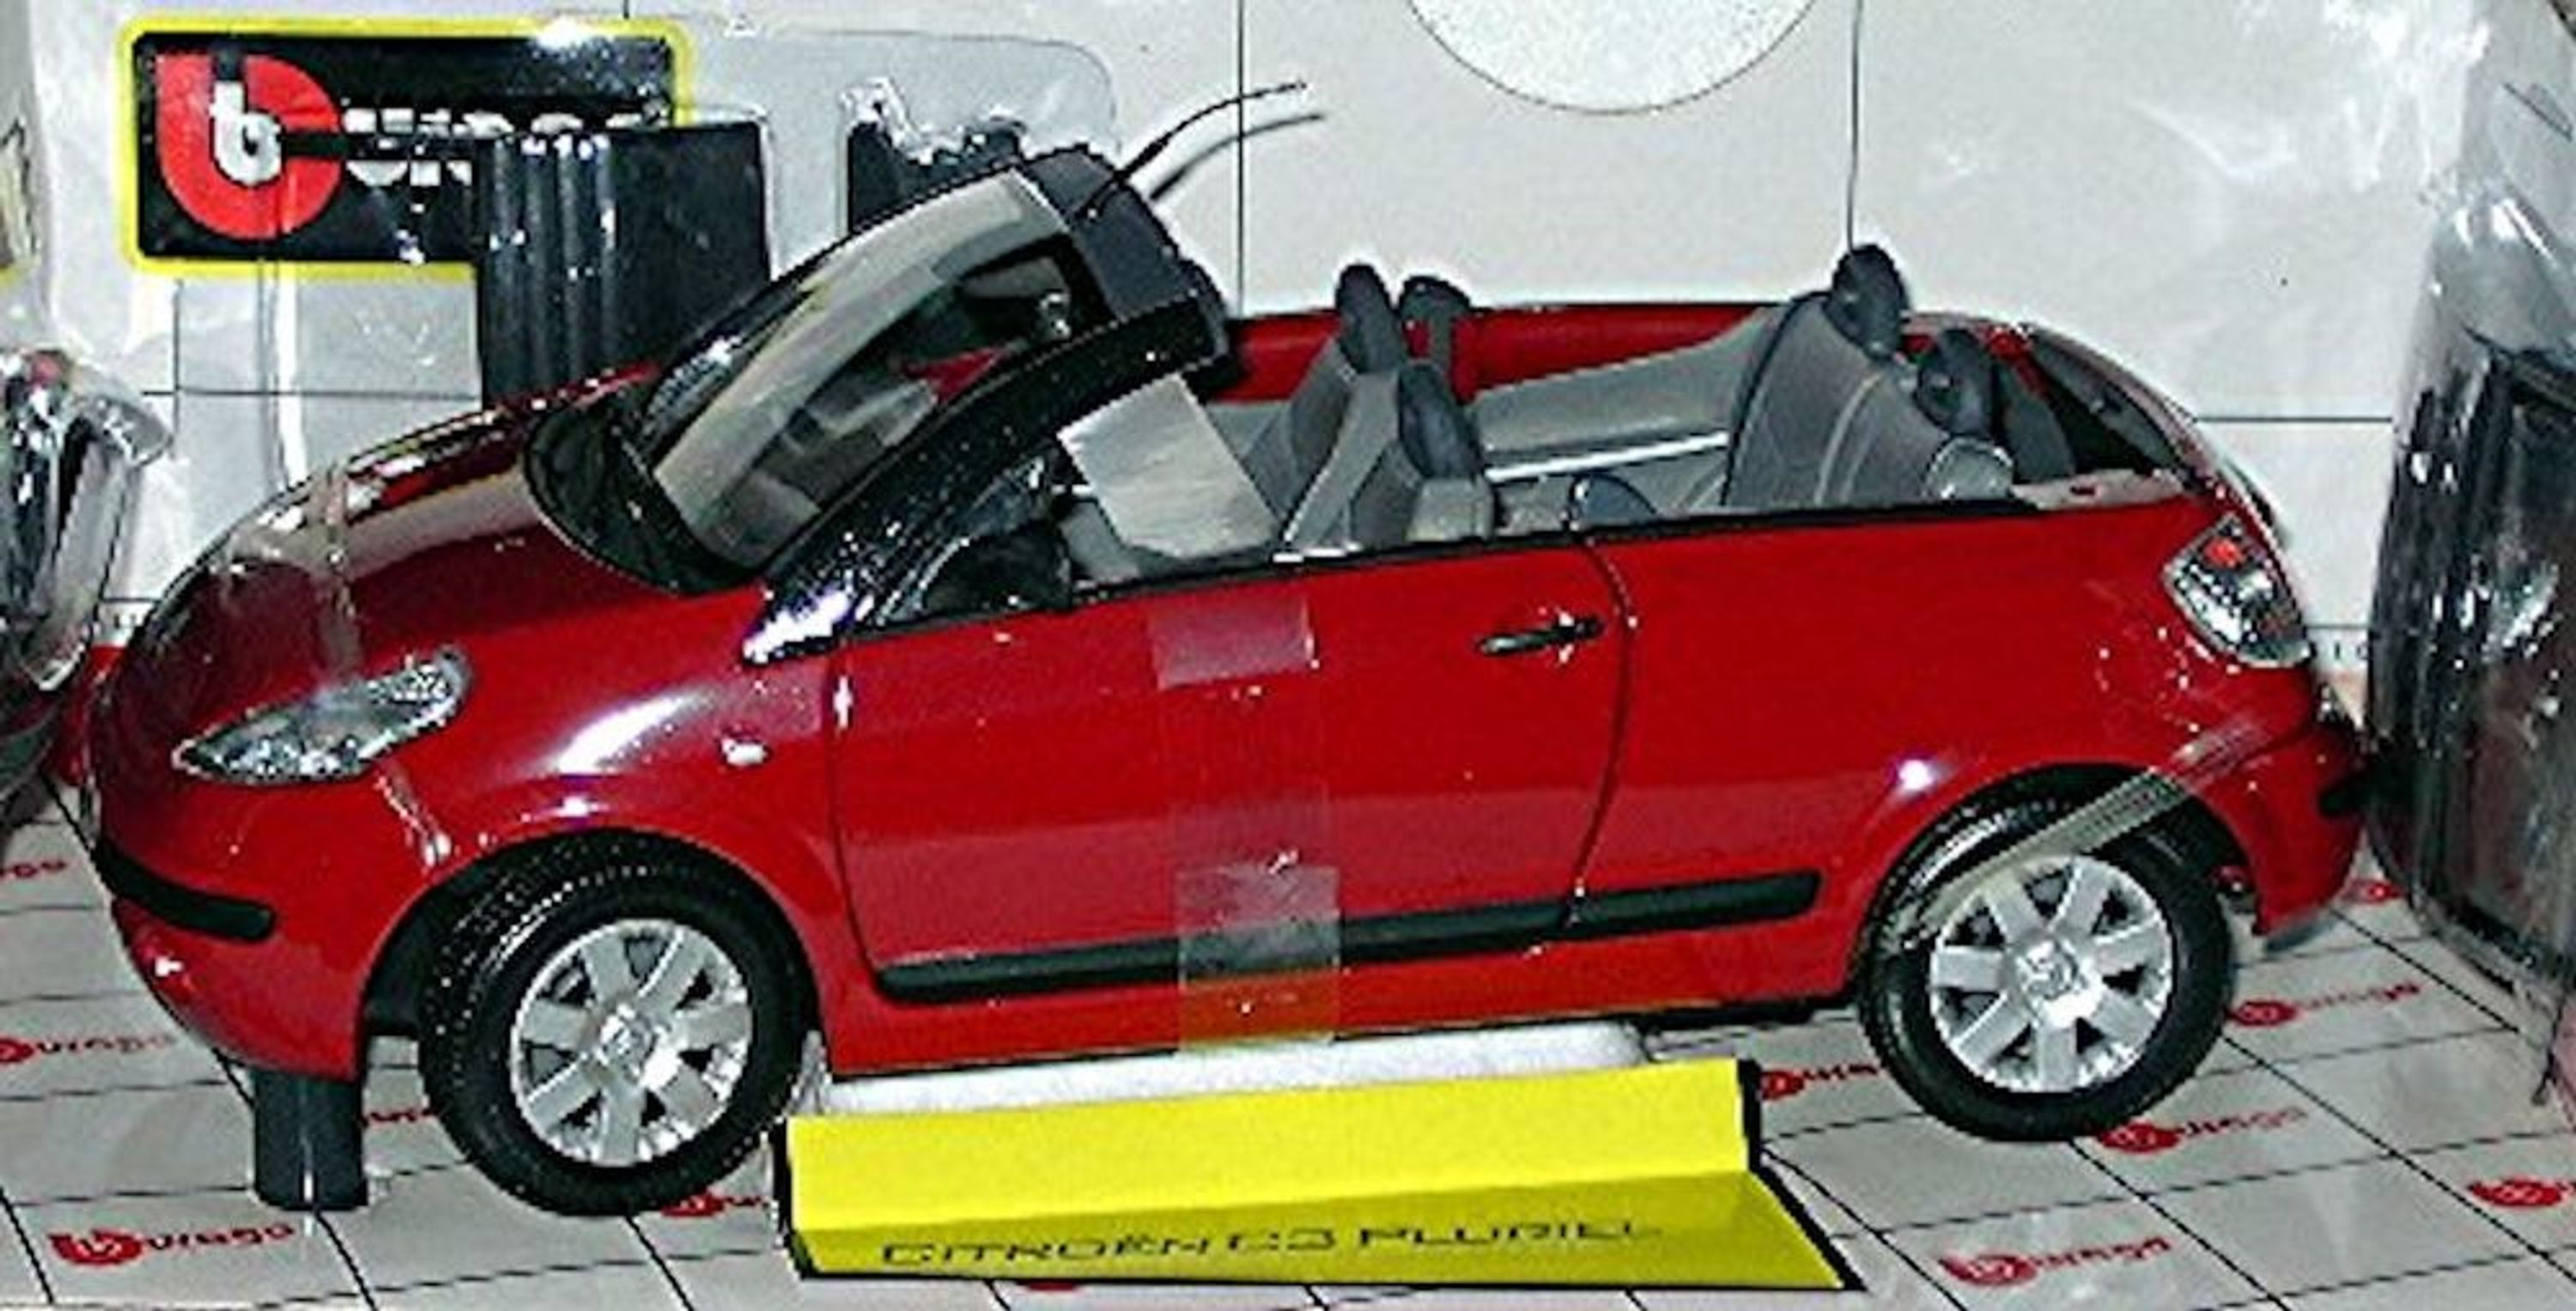 citroen c3 pluriel cabriolet verdeck 2003 08 rot red 1 18 bburago ebay. Black Bedroom Furniture Sets. Home Design Ideas